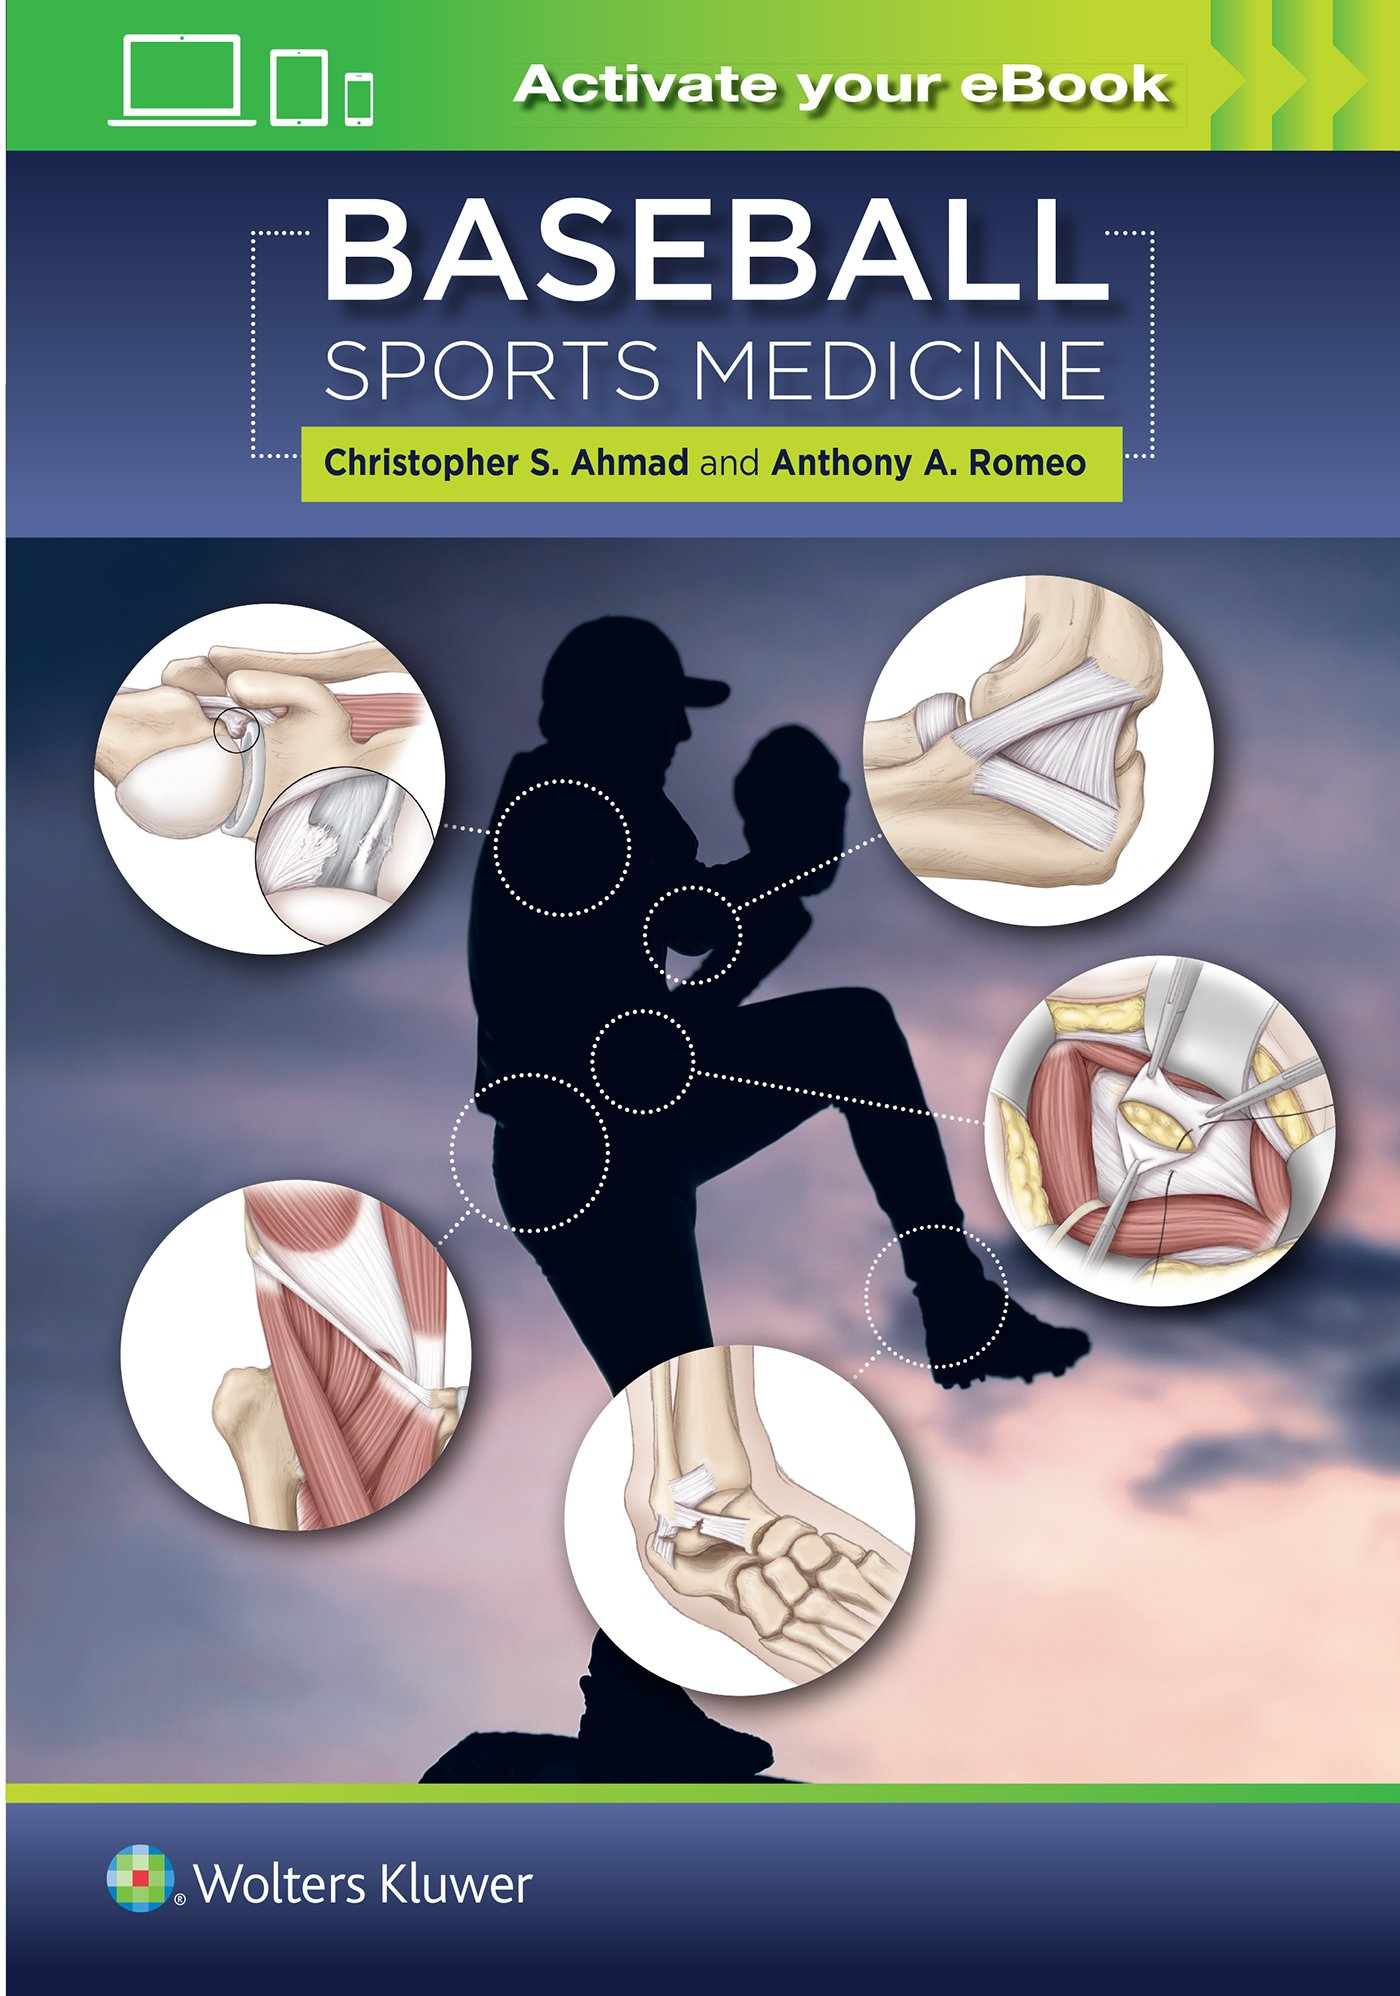 Baseball Sports Medicine by LWW